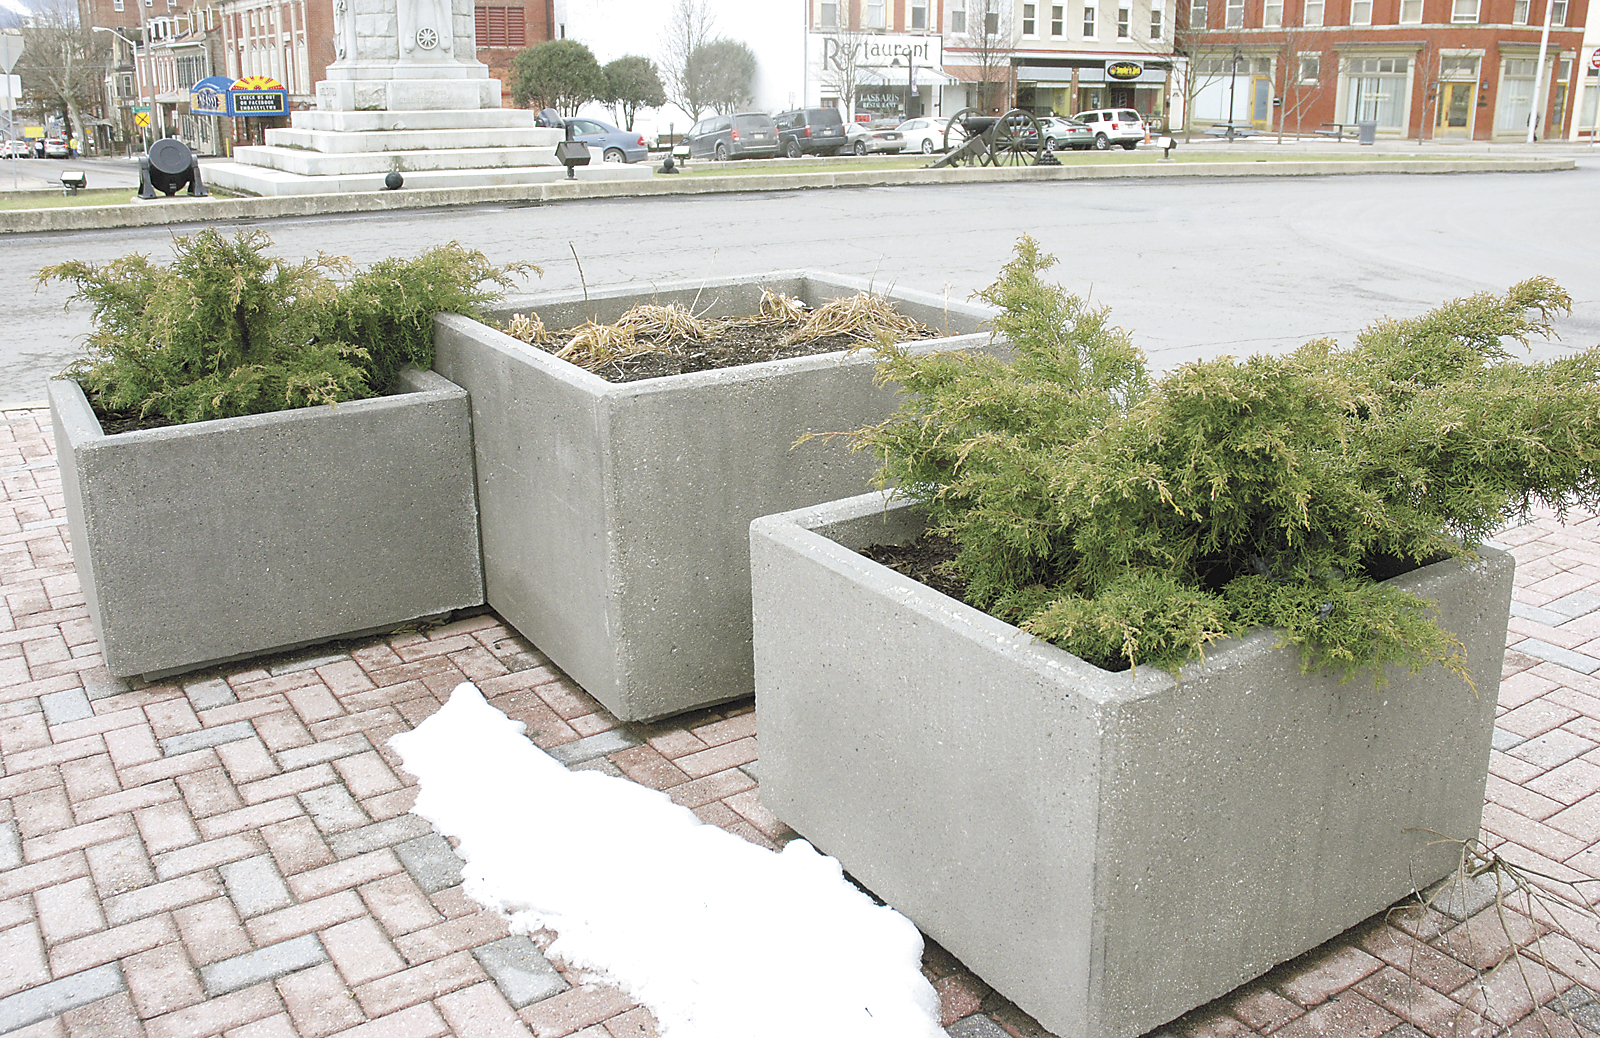 Concrete Planters | News, Sports, Jobs - The Sentinel